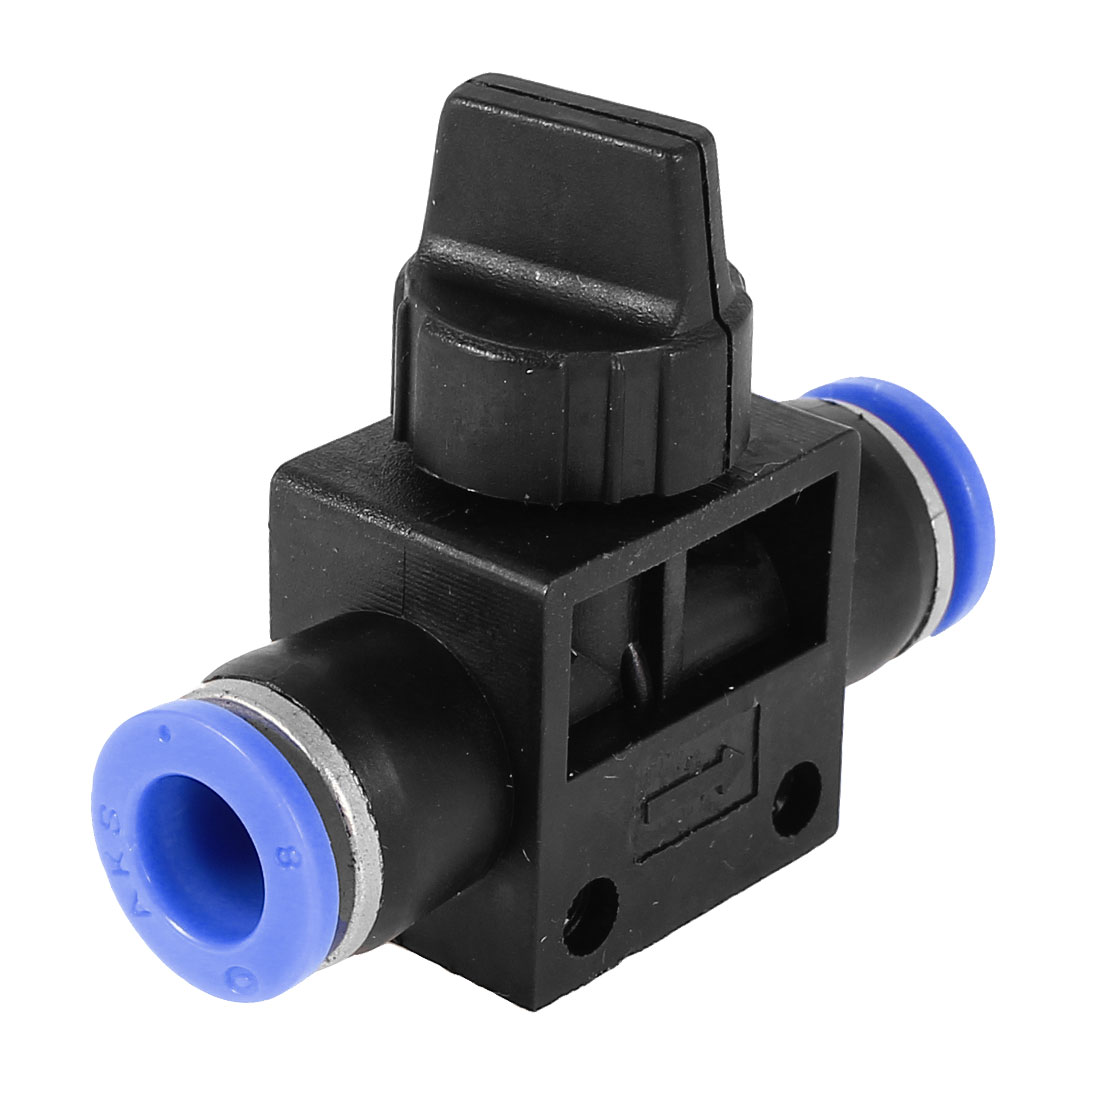 Air Pneumatic Quick Fitting 8mm to 8mm Push In Speed Controller Valve Black Blue